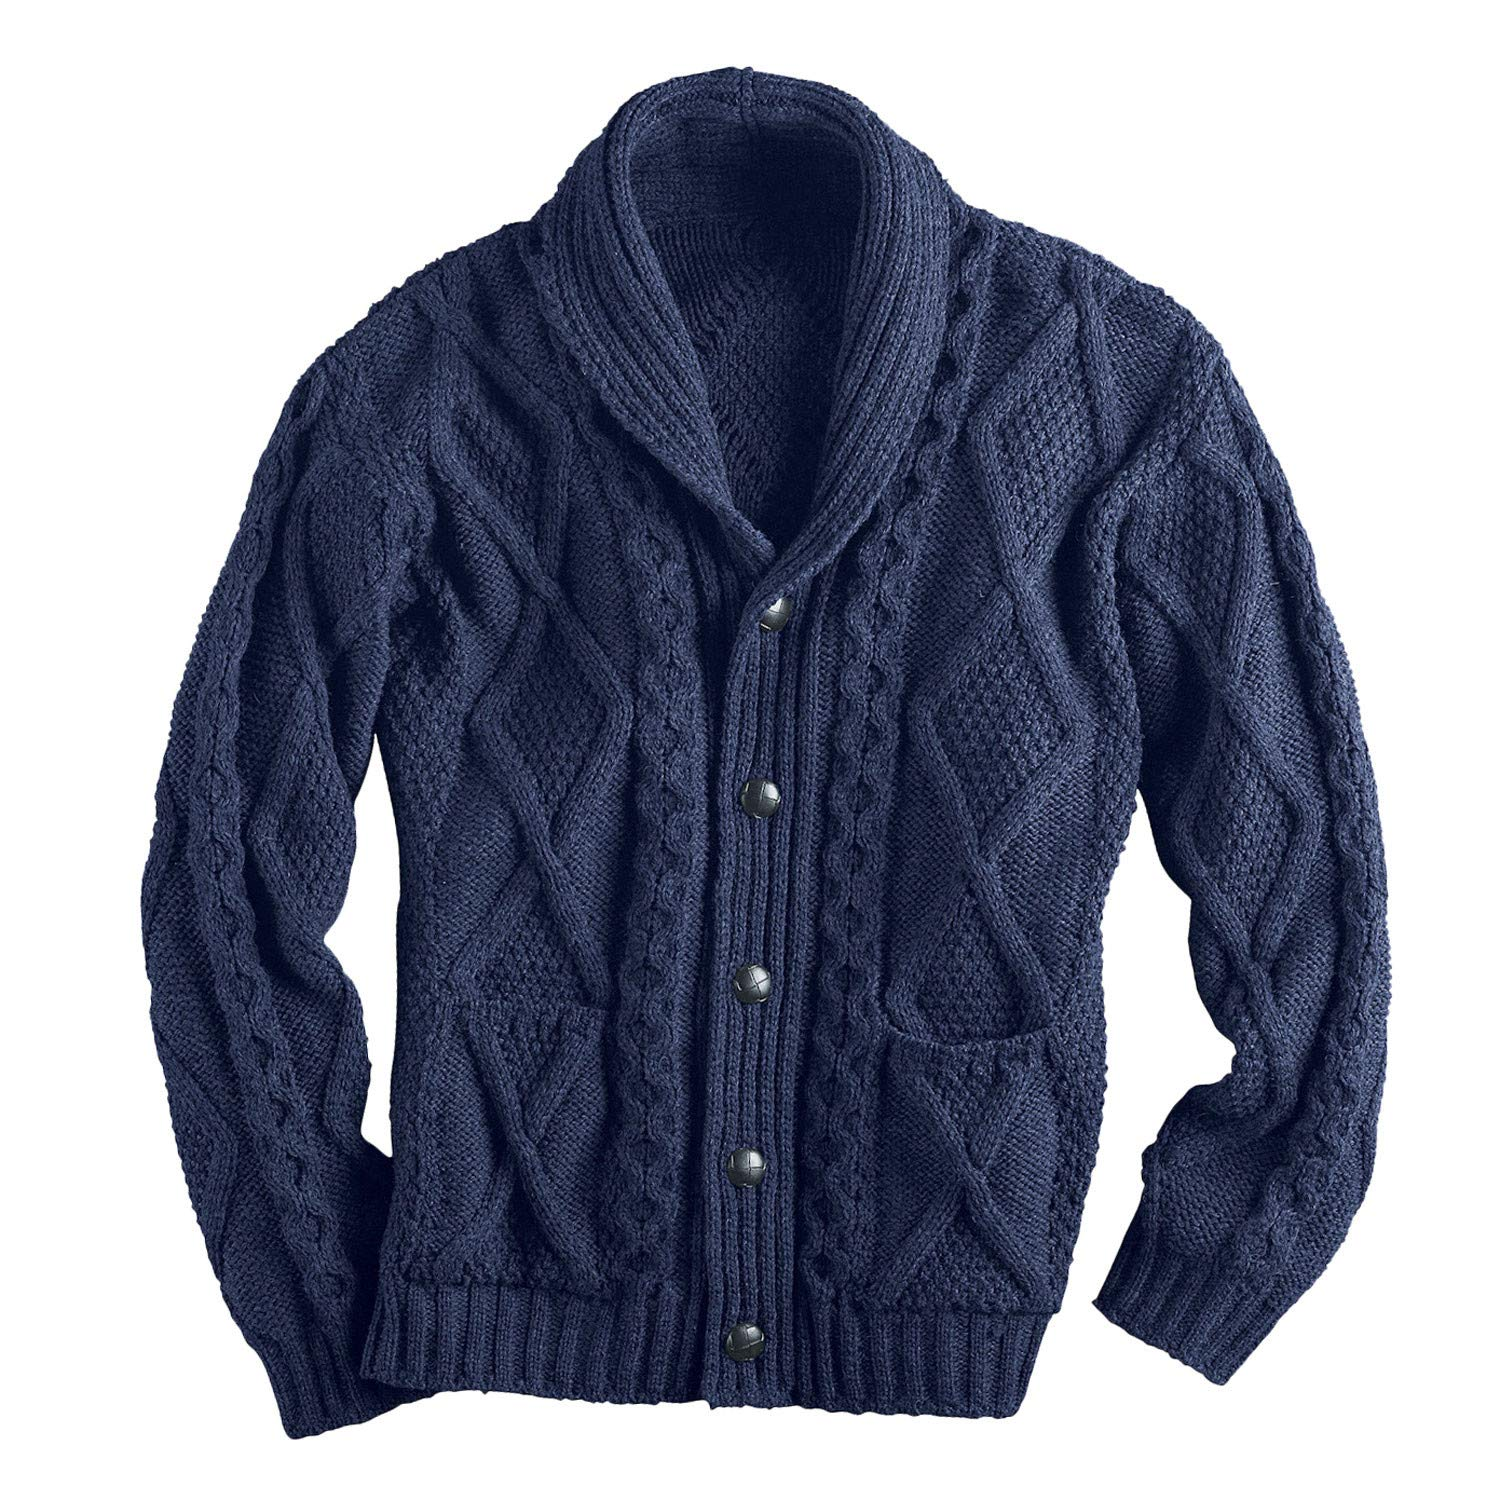 West End Knitwear Men's Aran Shawl Collar Cable Knit Cardigan Sweater - Navy - XL